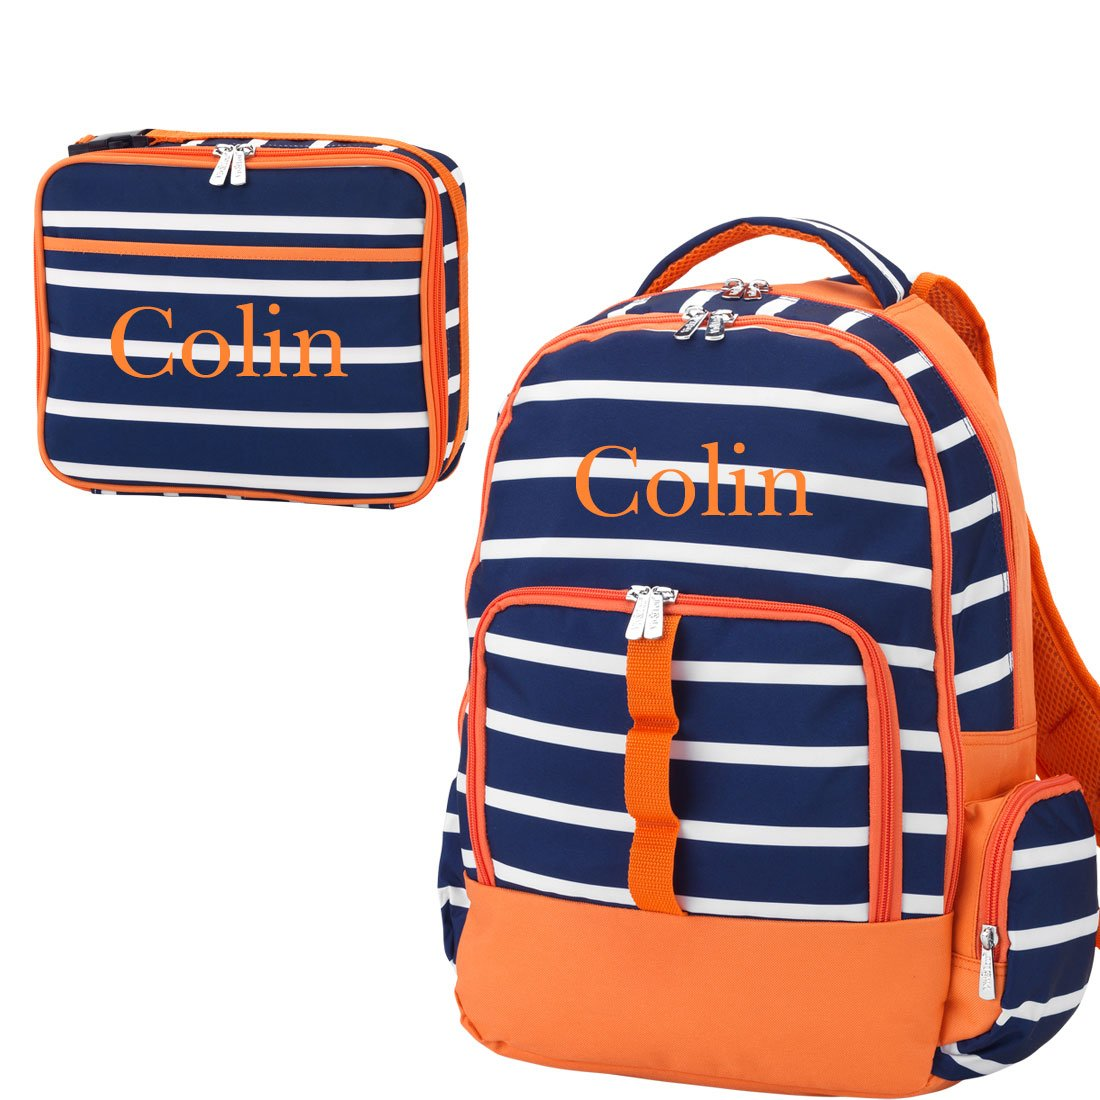 Reinforced Design Water Resistant Backpack and Lunch Sack Set (Personalized, Line-Up Navy Orange) by WB